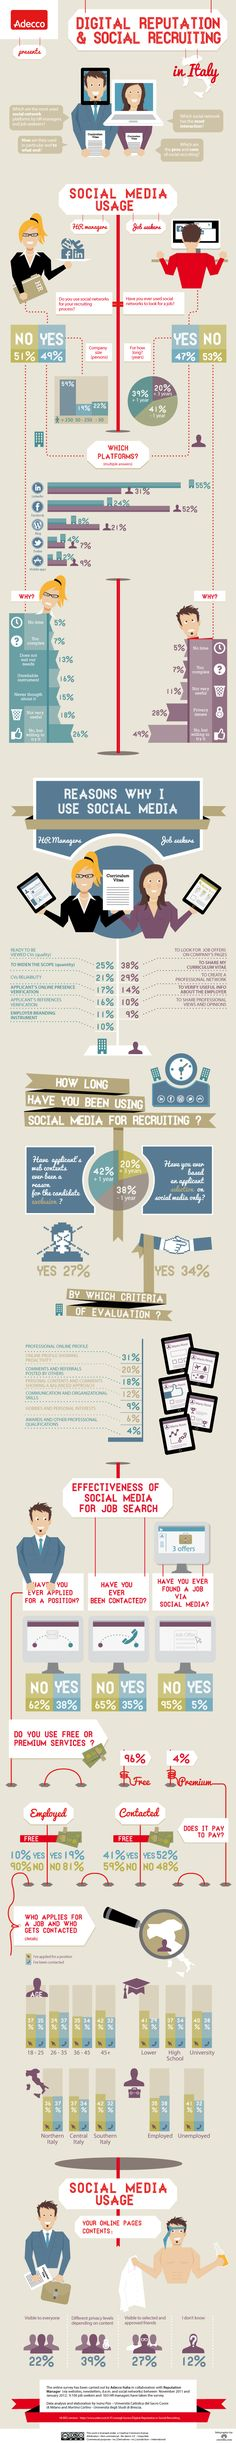 Infographics, Social Media and recruiters in Italy.